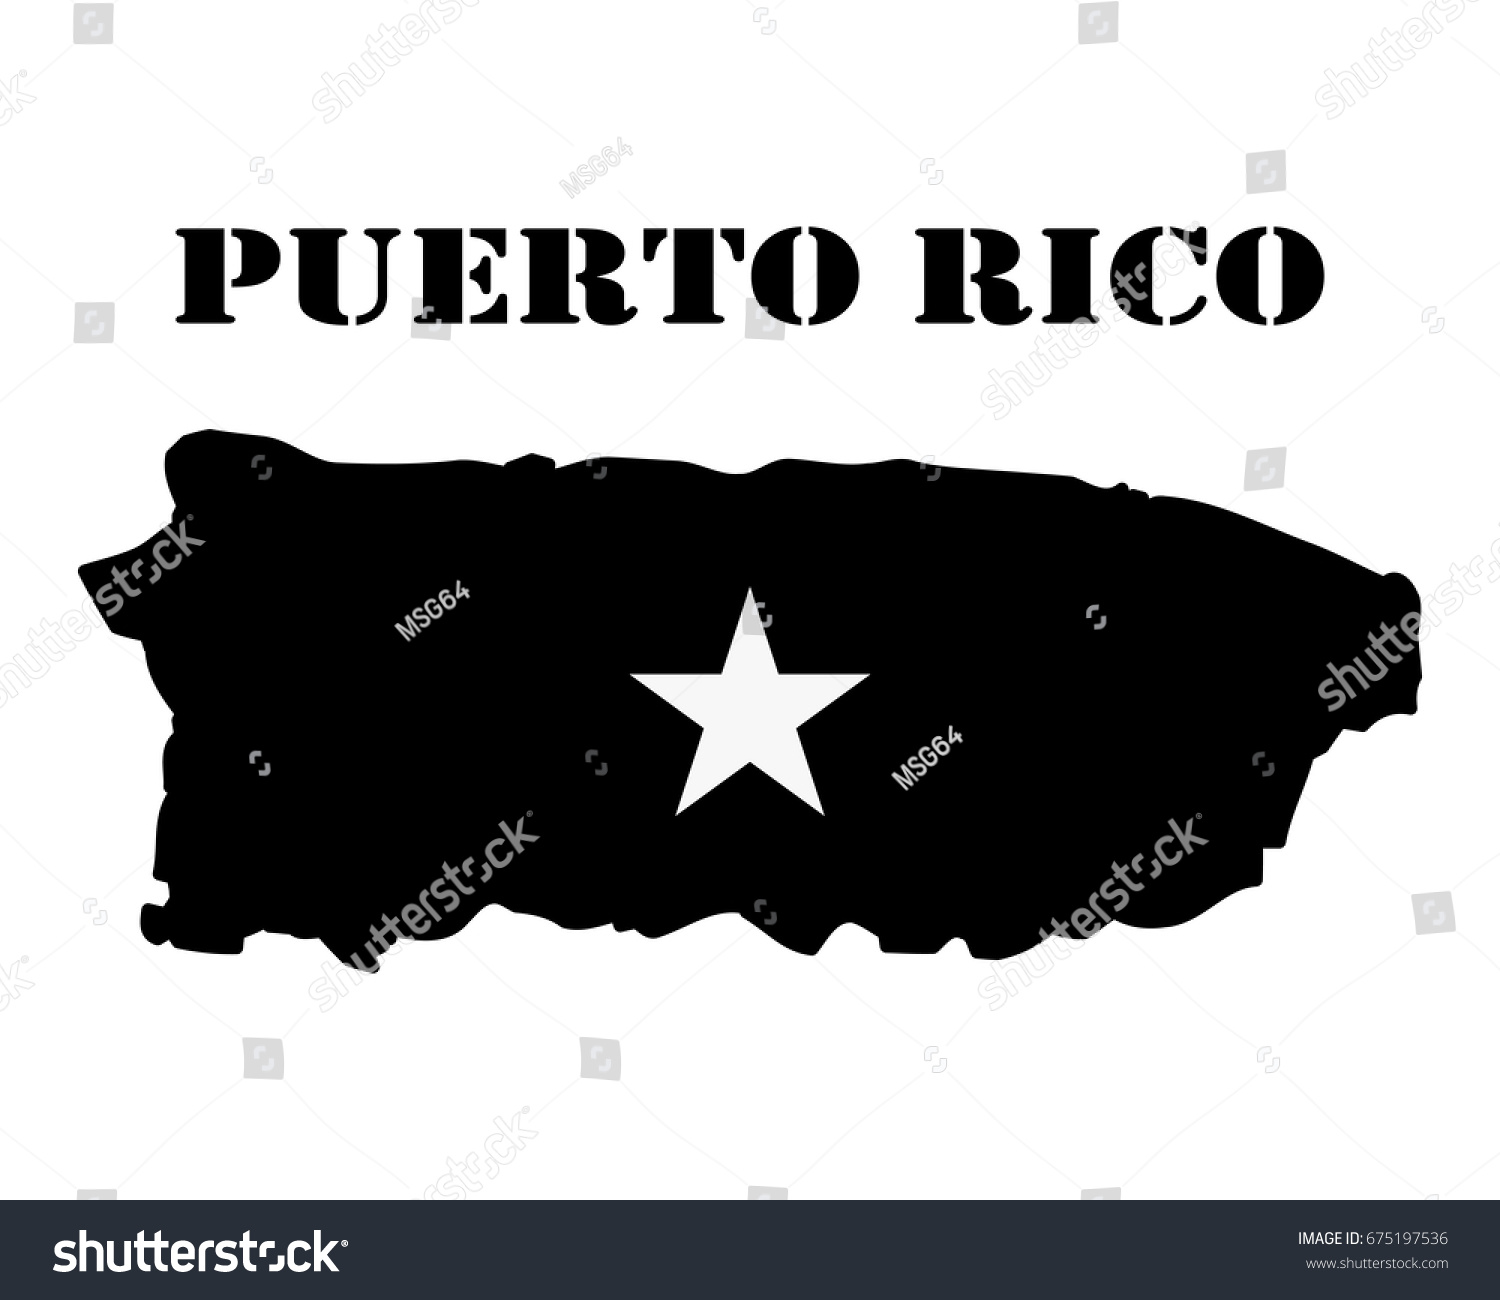 Black silhouette map white silhouette isle stock vector 675197536 black silhouette of the map and the white silhouette of the isle of puerto rico symbol biocorpaavc Choice Image